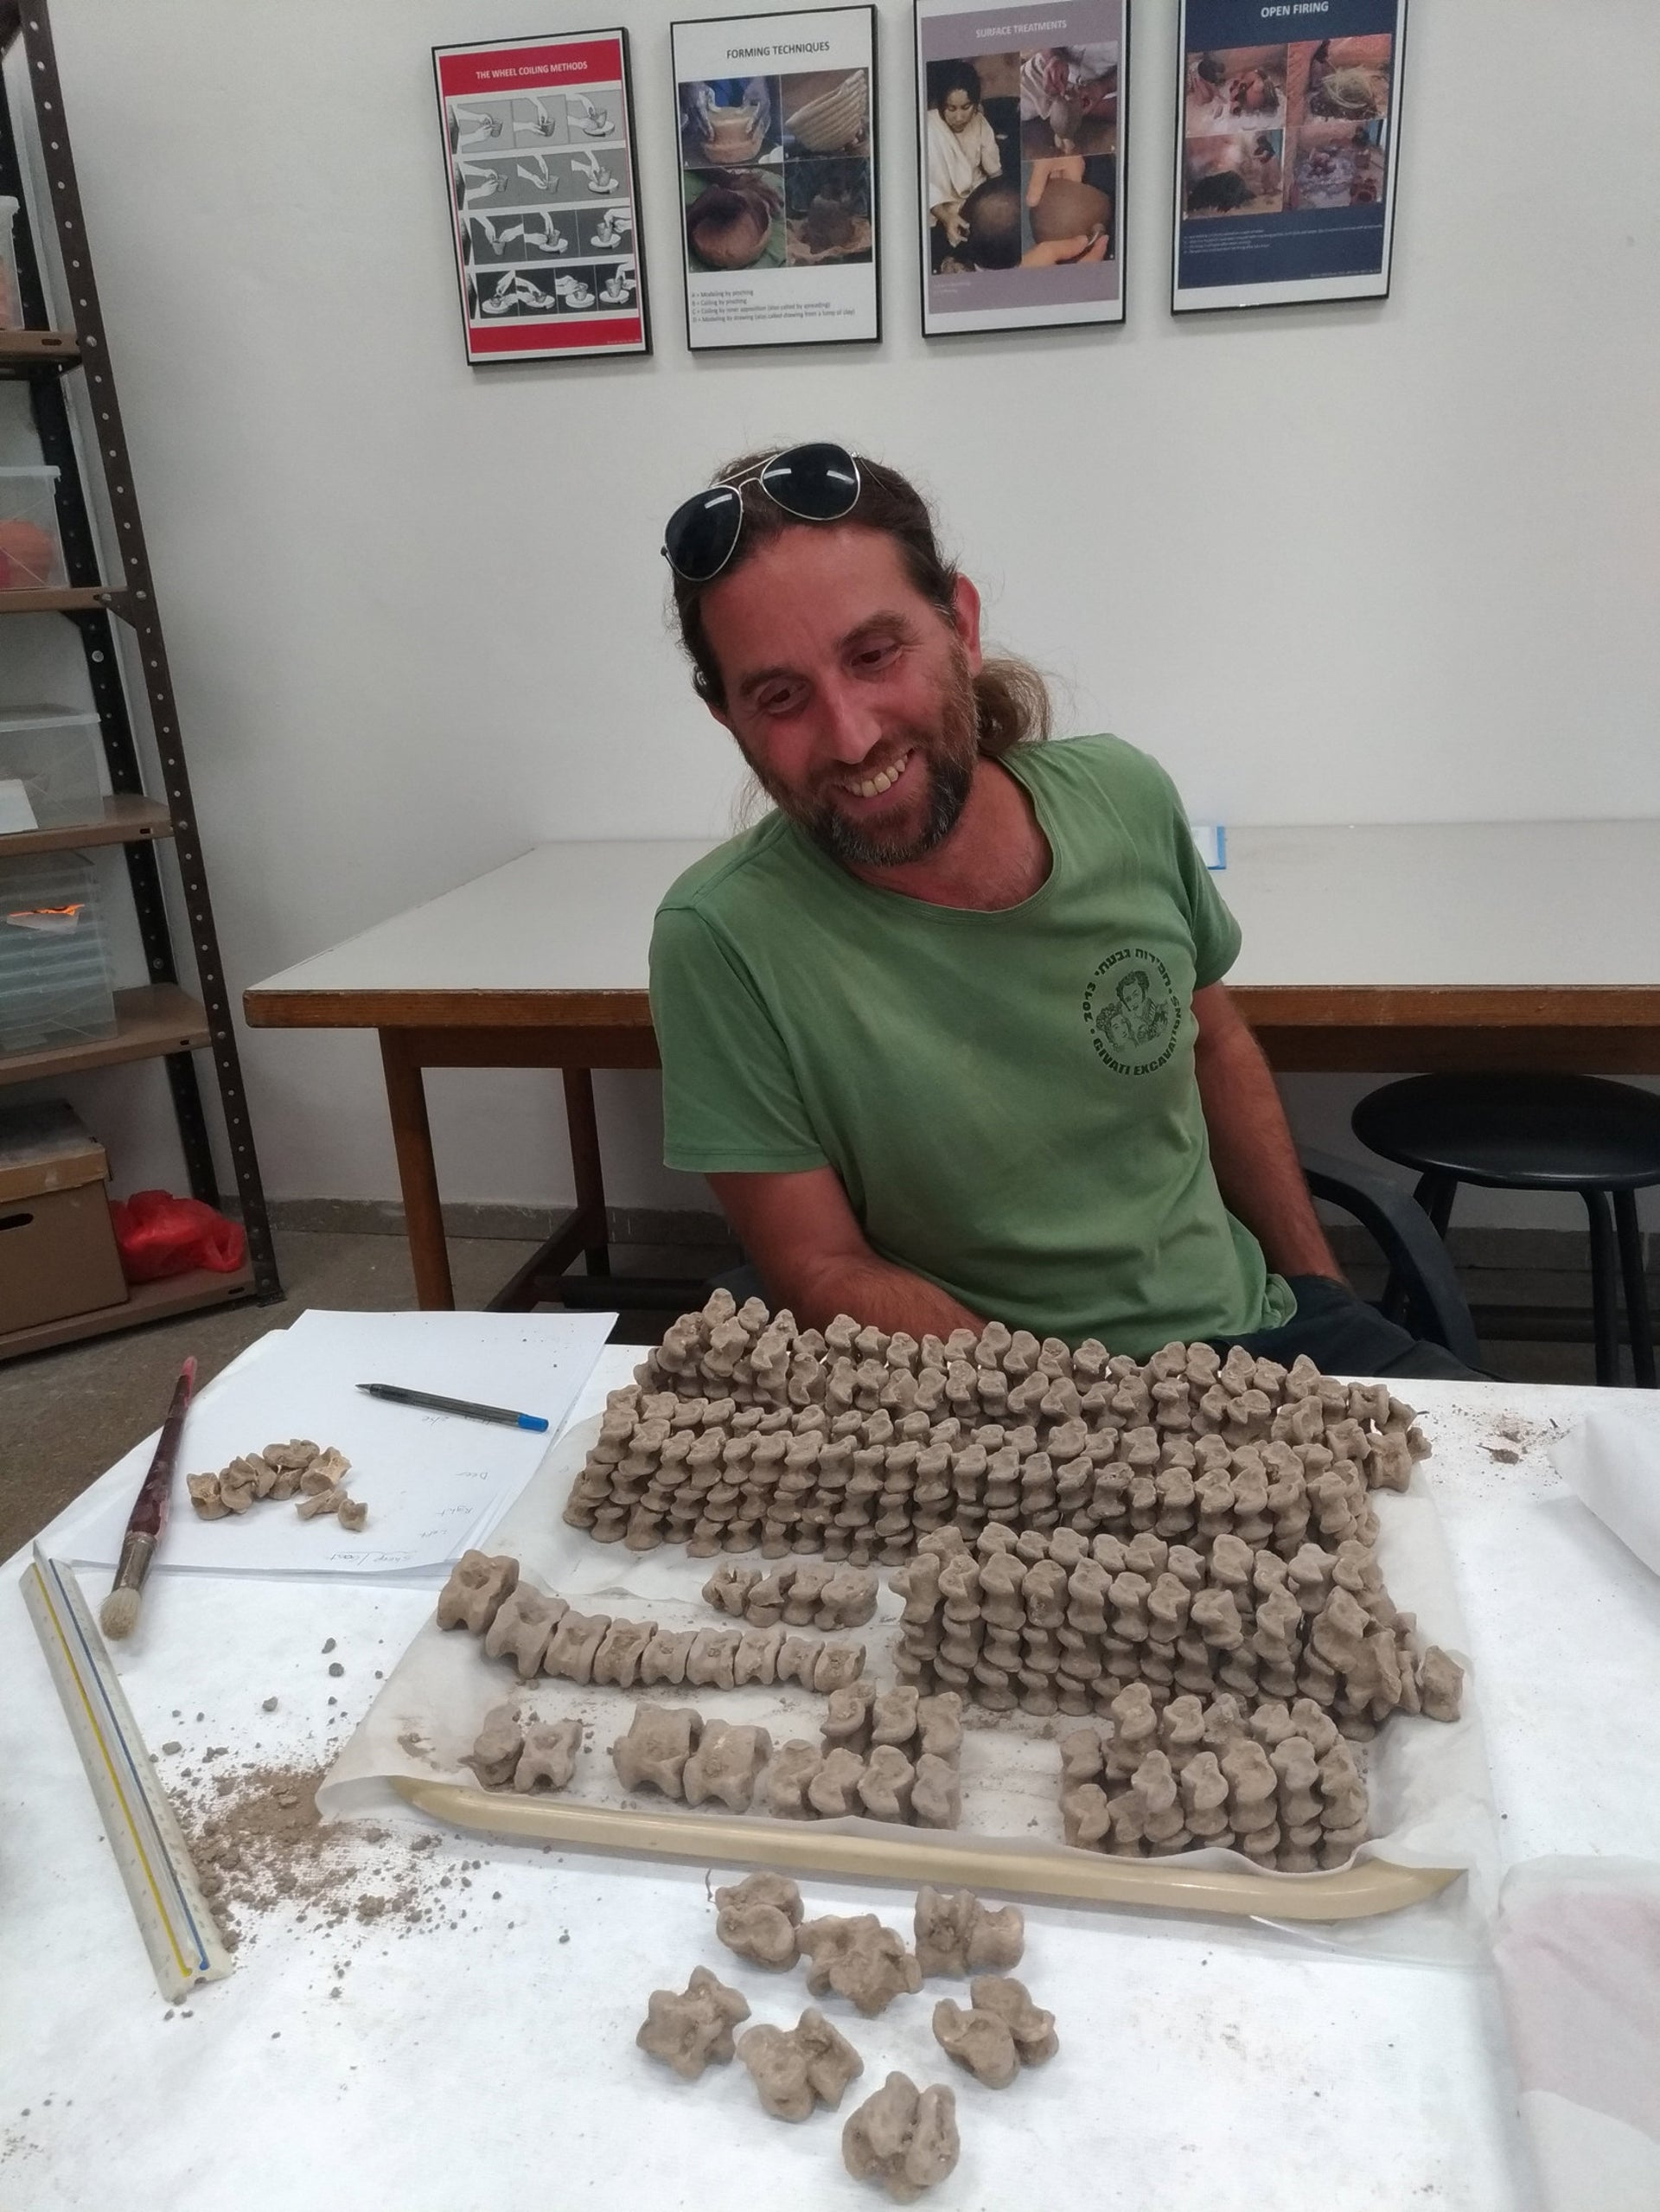 M.A. student Ariel Shatil examining the astragali bones at the Institute of Archaeology, the Hebrew University of Jerusalem